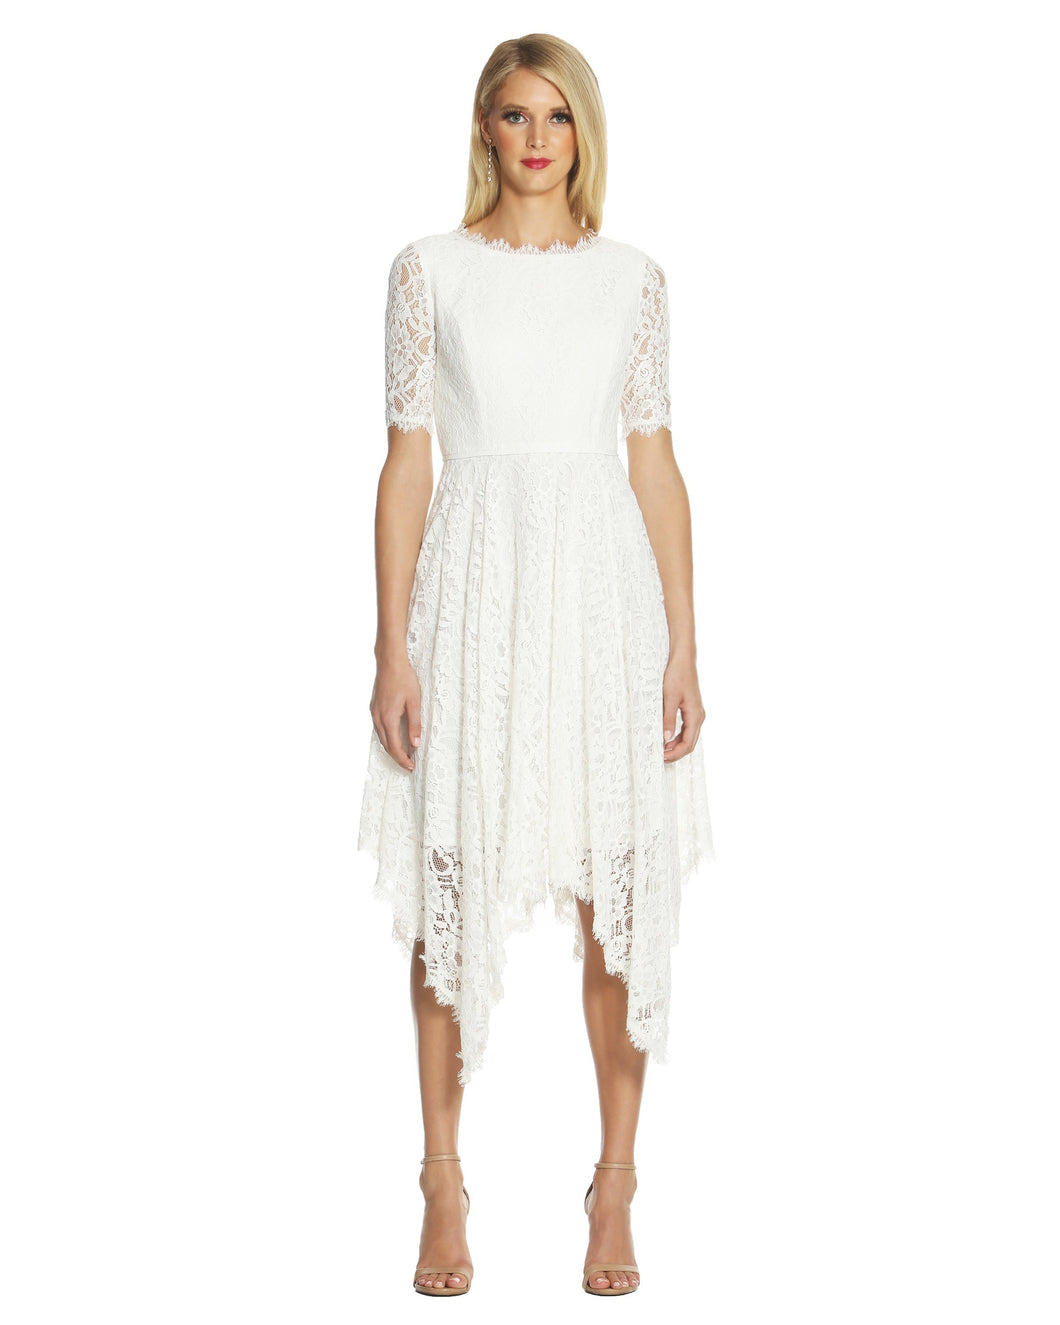 Handkerchief Lace Dress White - 1